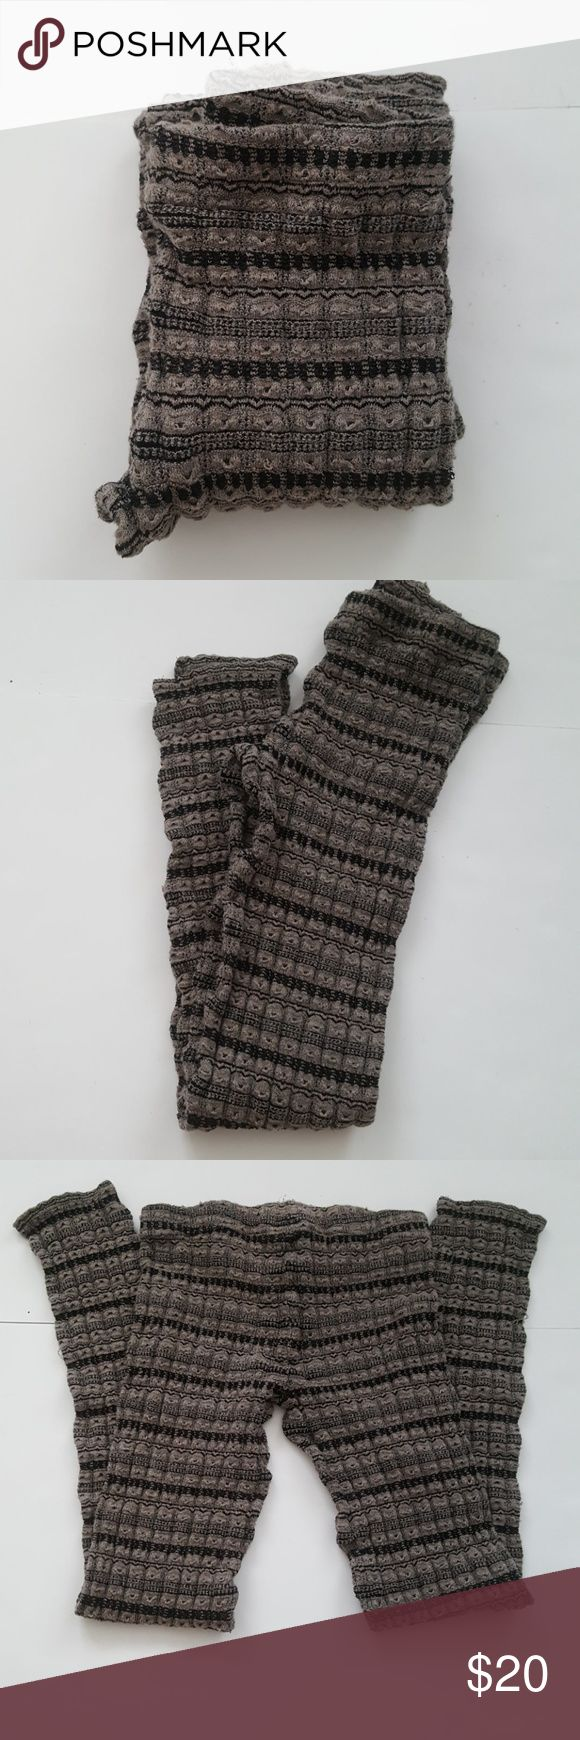 """Free People Black and Gray Knit Leggings Knit leggings - ideal for wearing under a long tunic top or dress.                                                                              Inseam 24 1/2"""" Rise 7"""" Free People Pants Leggings"""